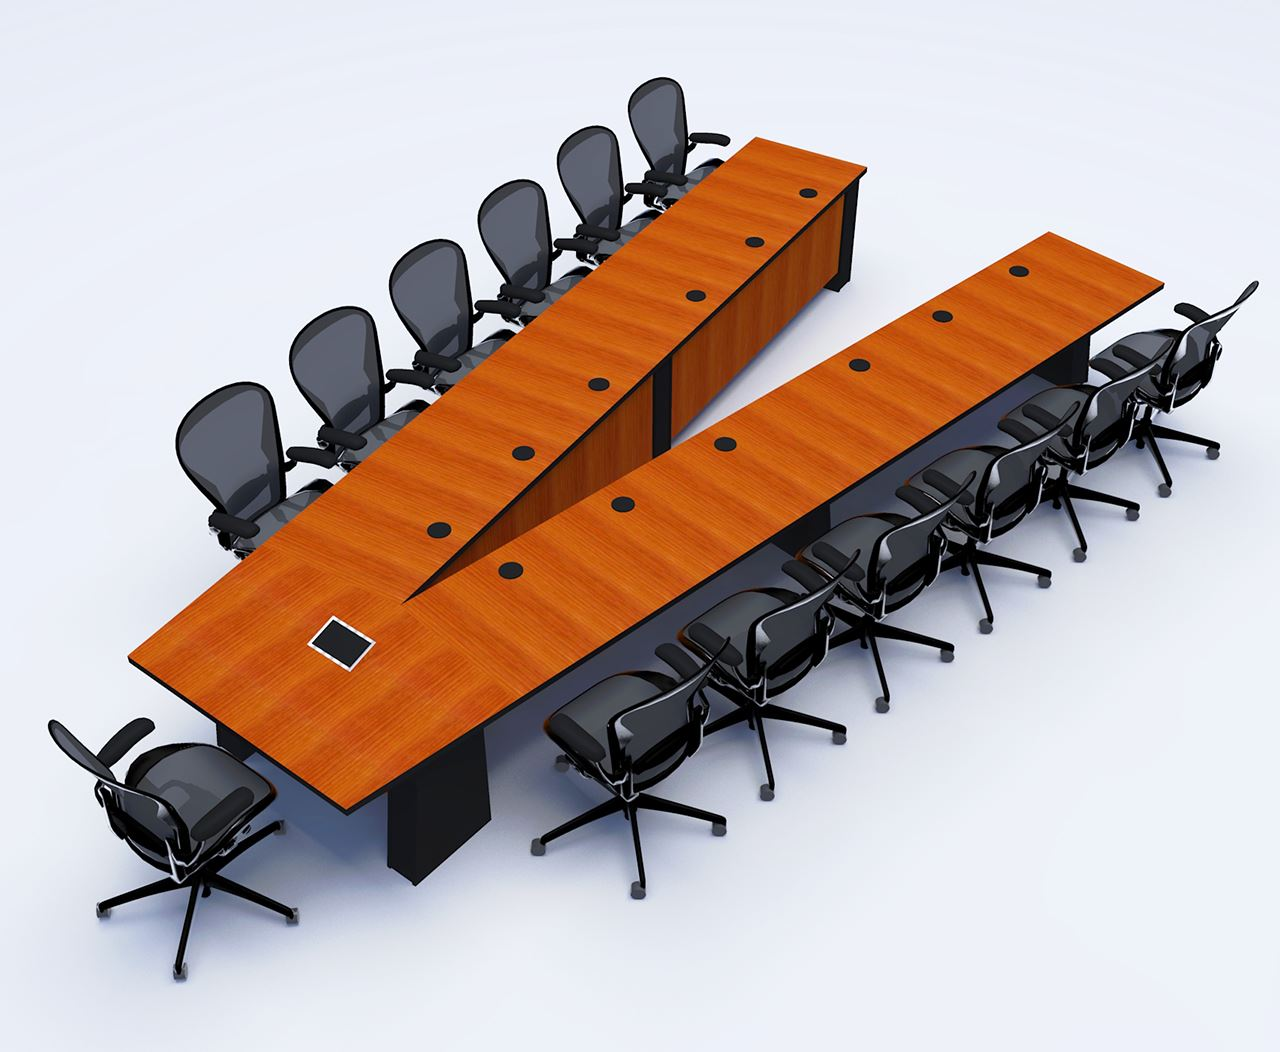 General Atomics Conference Table | Paul Downs Cabinetmakers